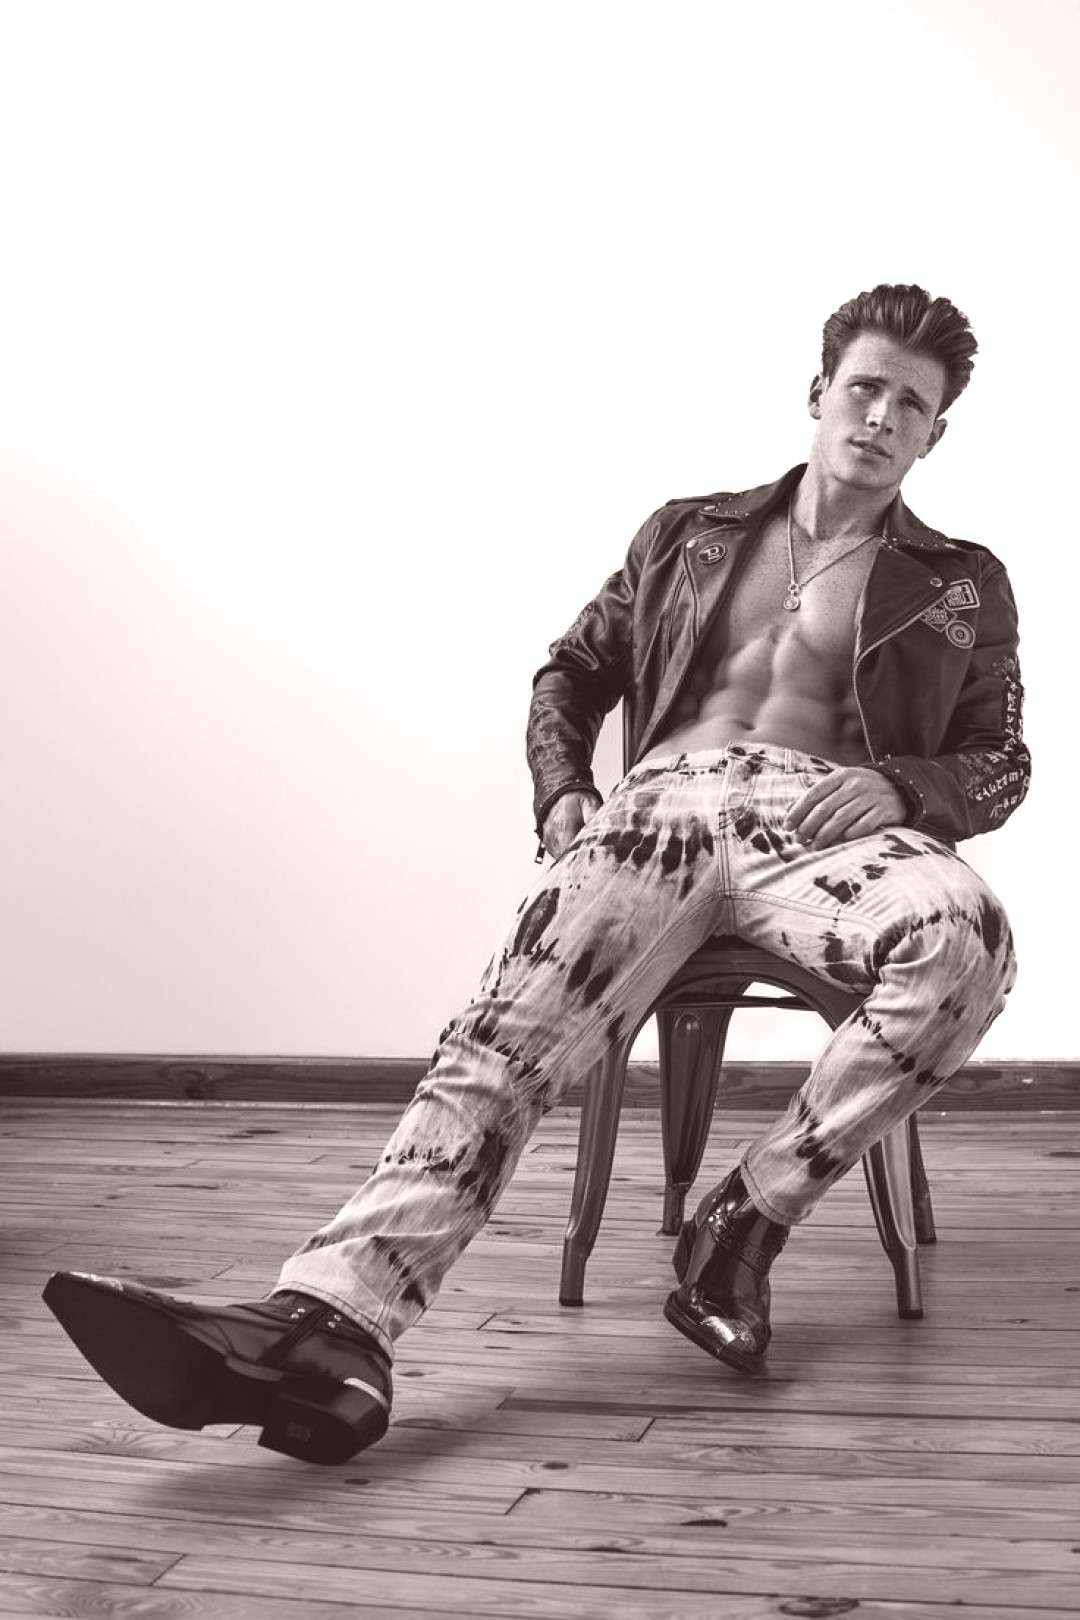 Huh Samuel, Ethan, Hector + More for Hunger Magazine Stand Out, by Blake Ballard, featuring Calvin